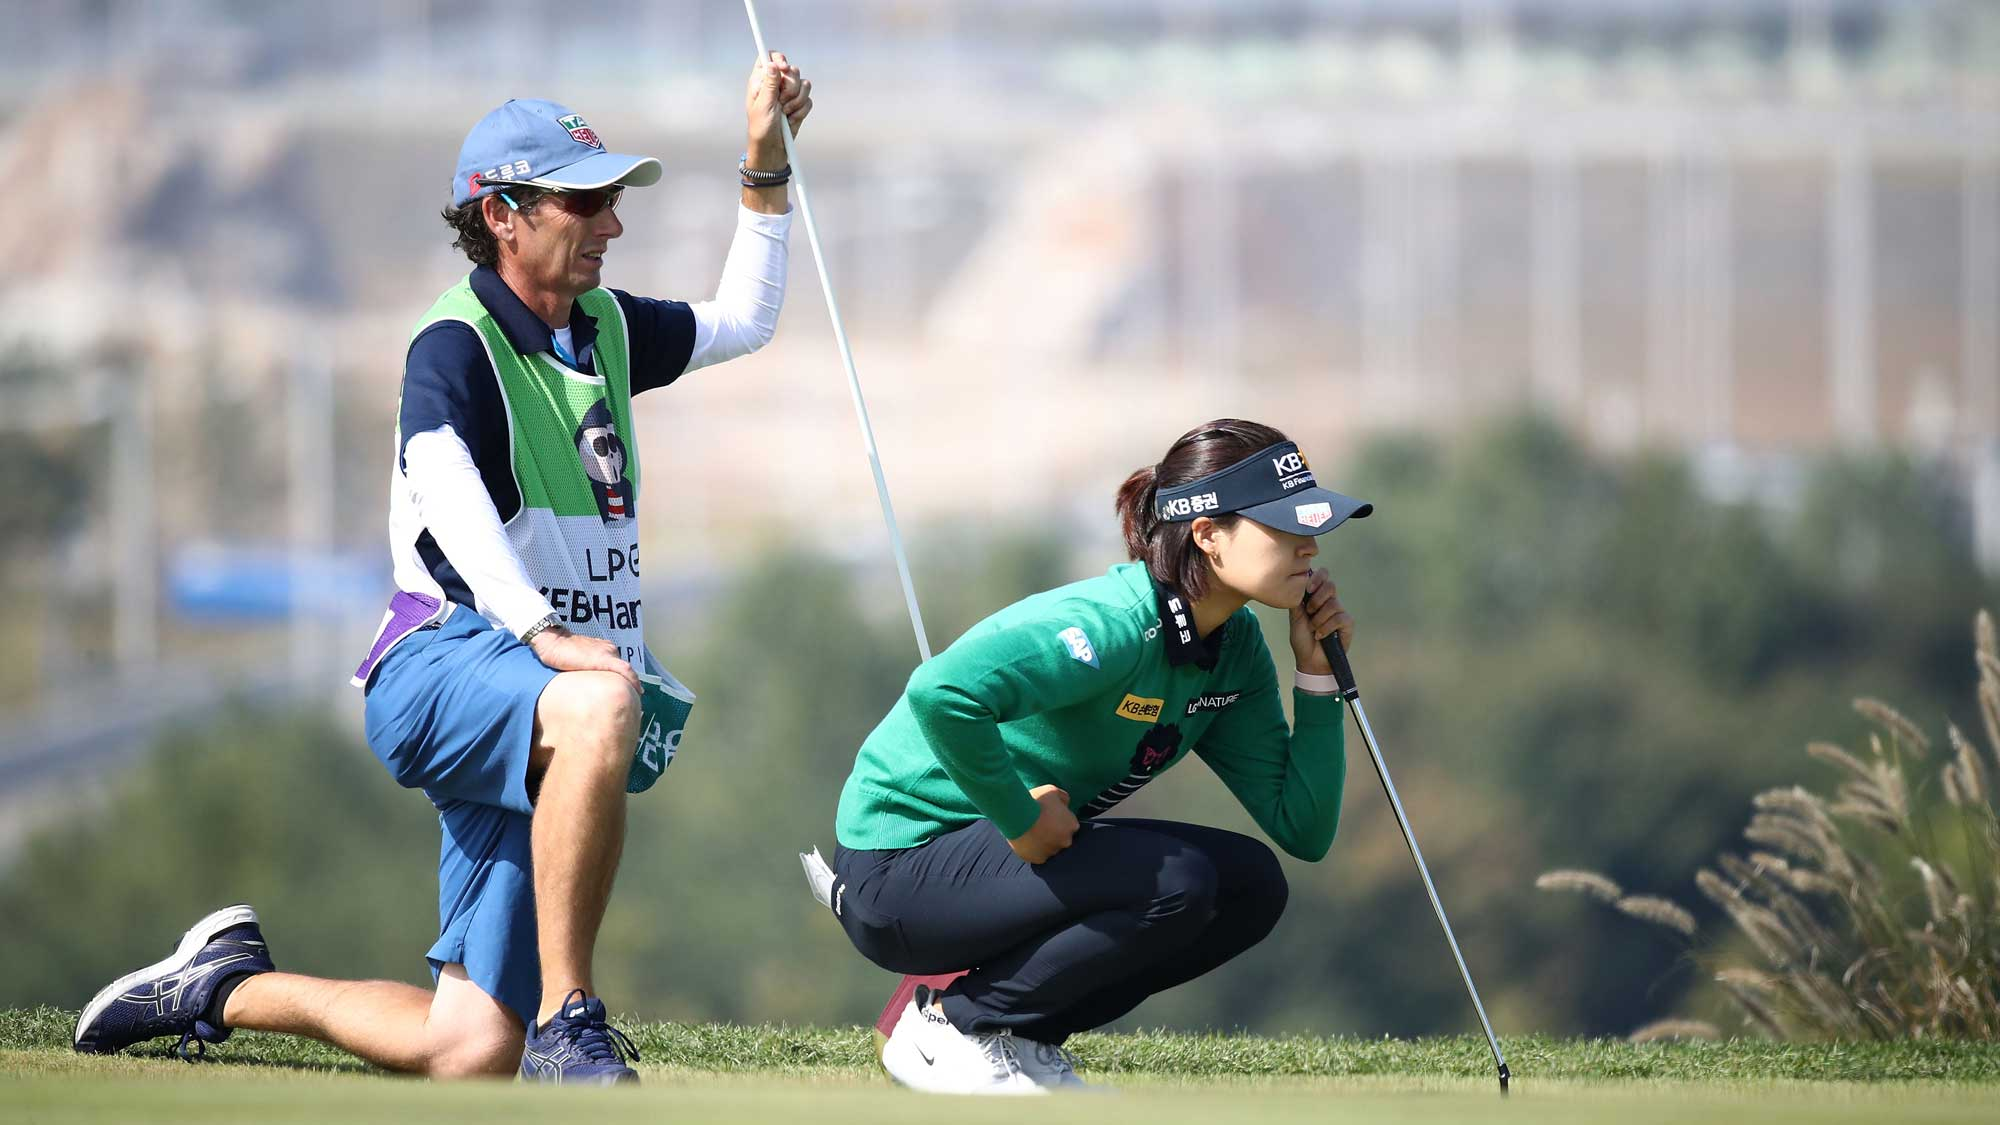 First LPGA title for Chun in two years